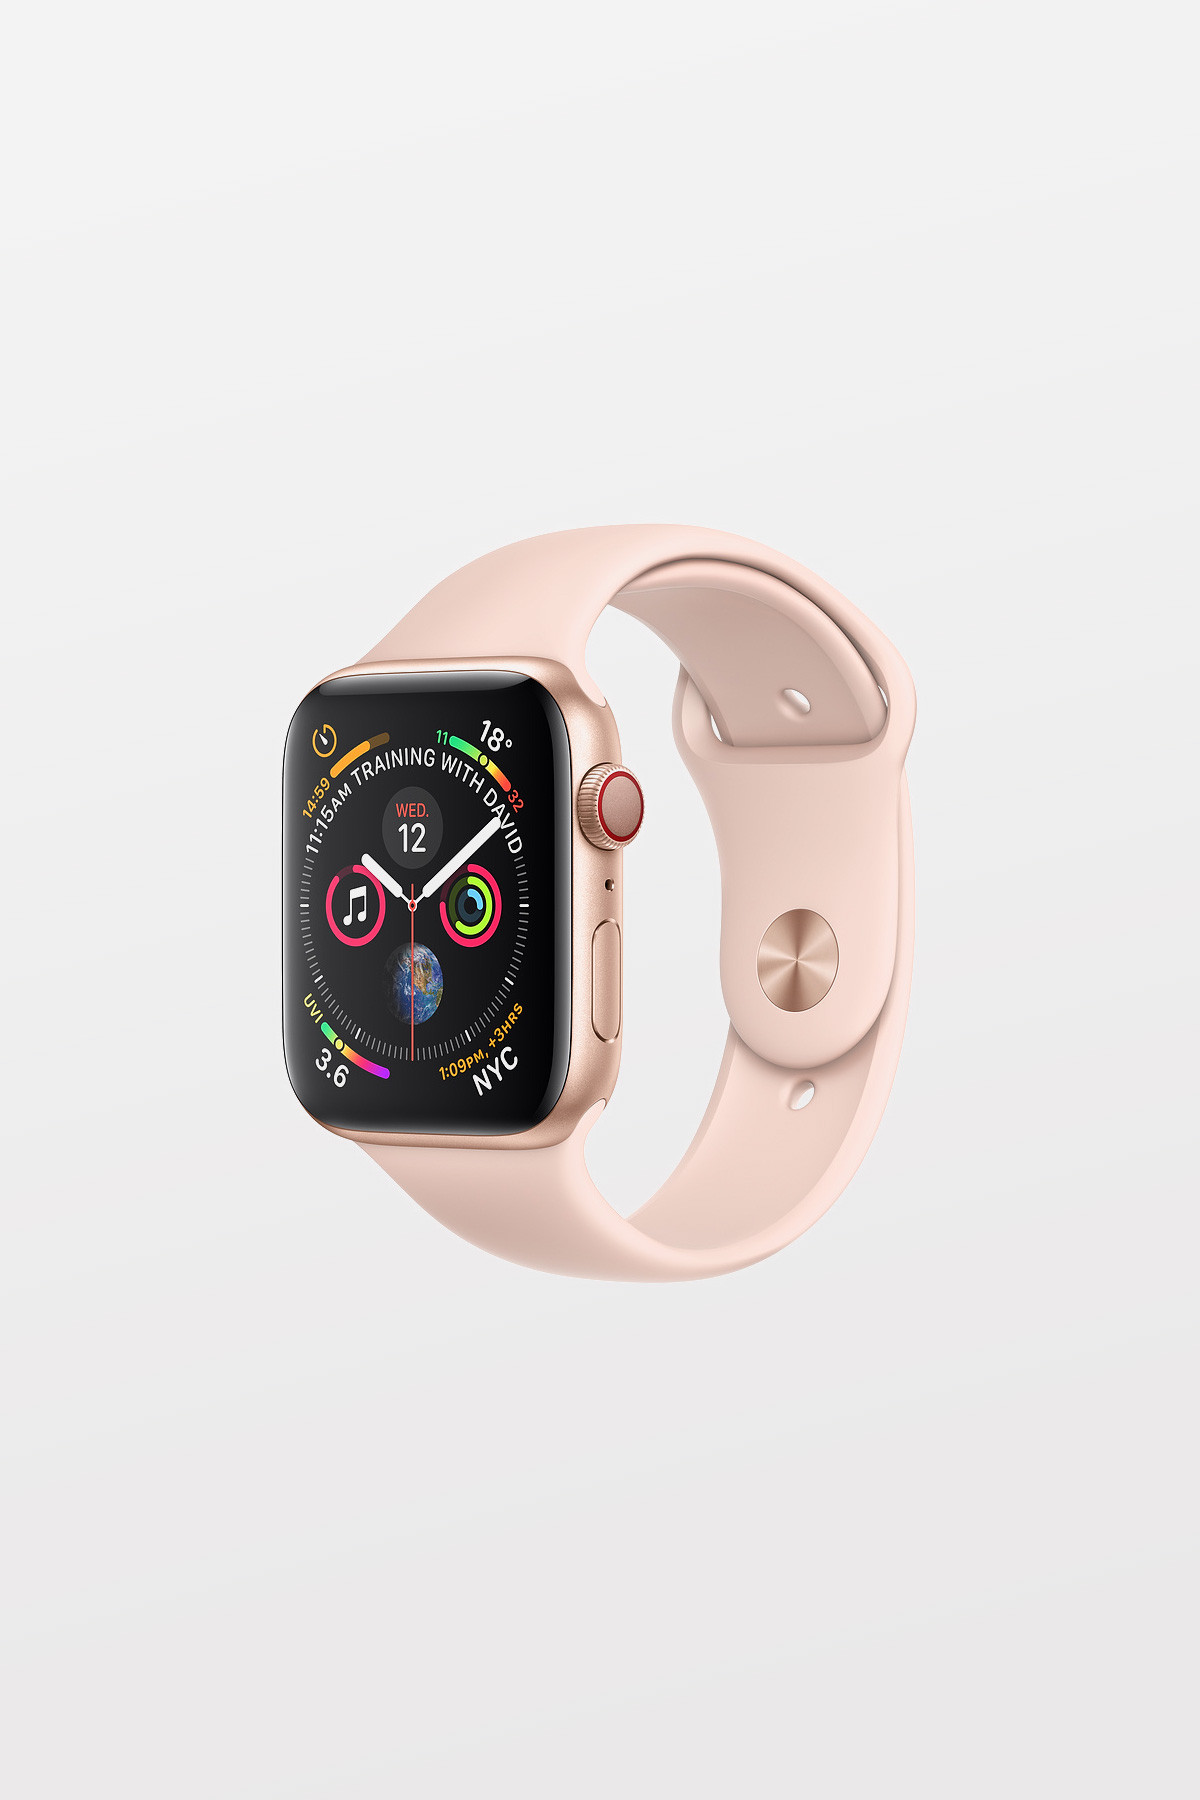 Apple Watch Series 4 Cellular - 40mm - Gold Aluminium Case with Pink Sand Sport Band